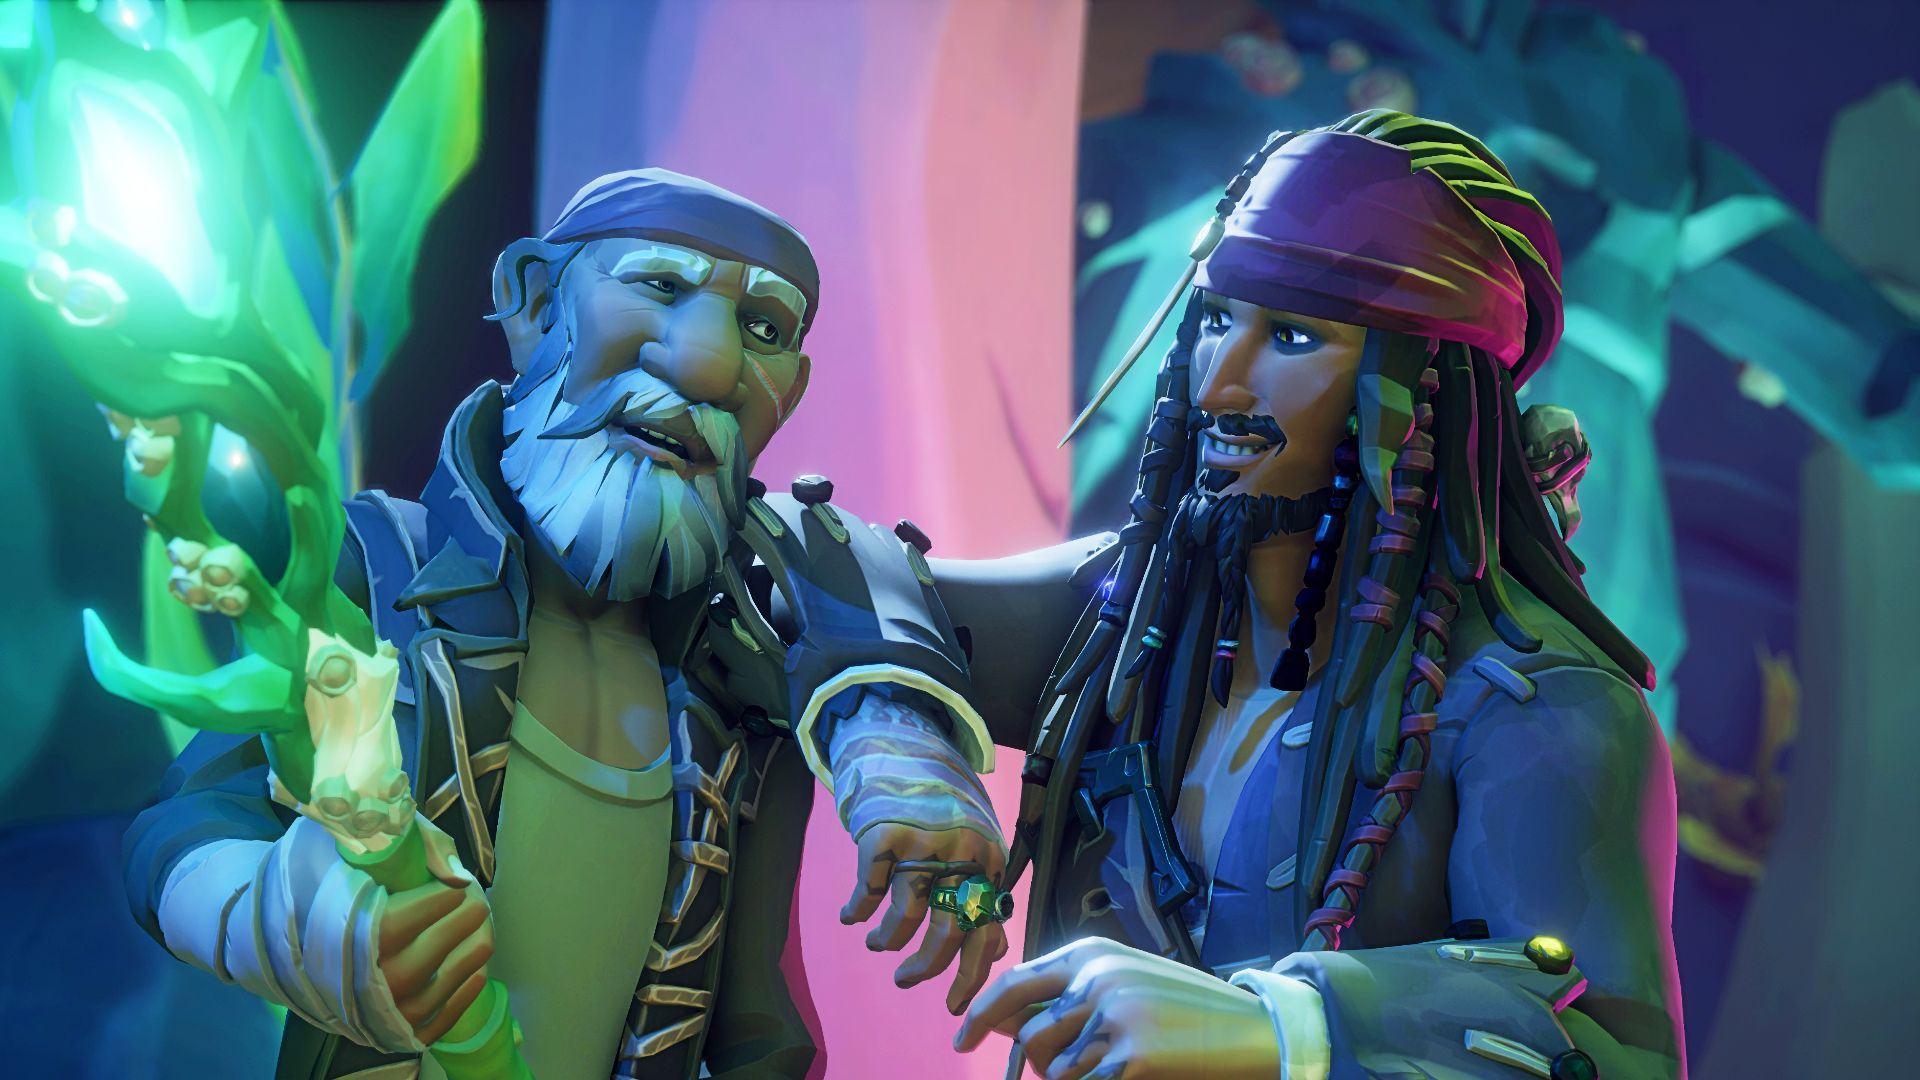 Sea of Thieves tops the Steam sales charts again after Pirates of the Caribbean update